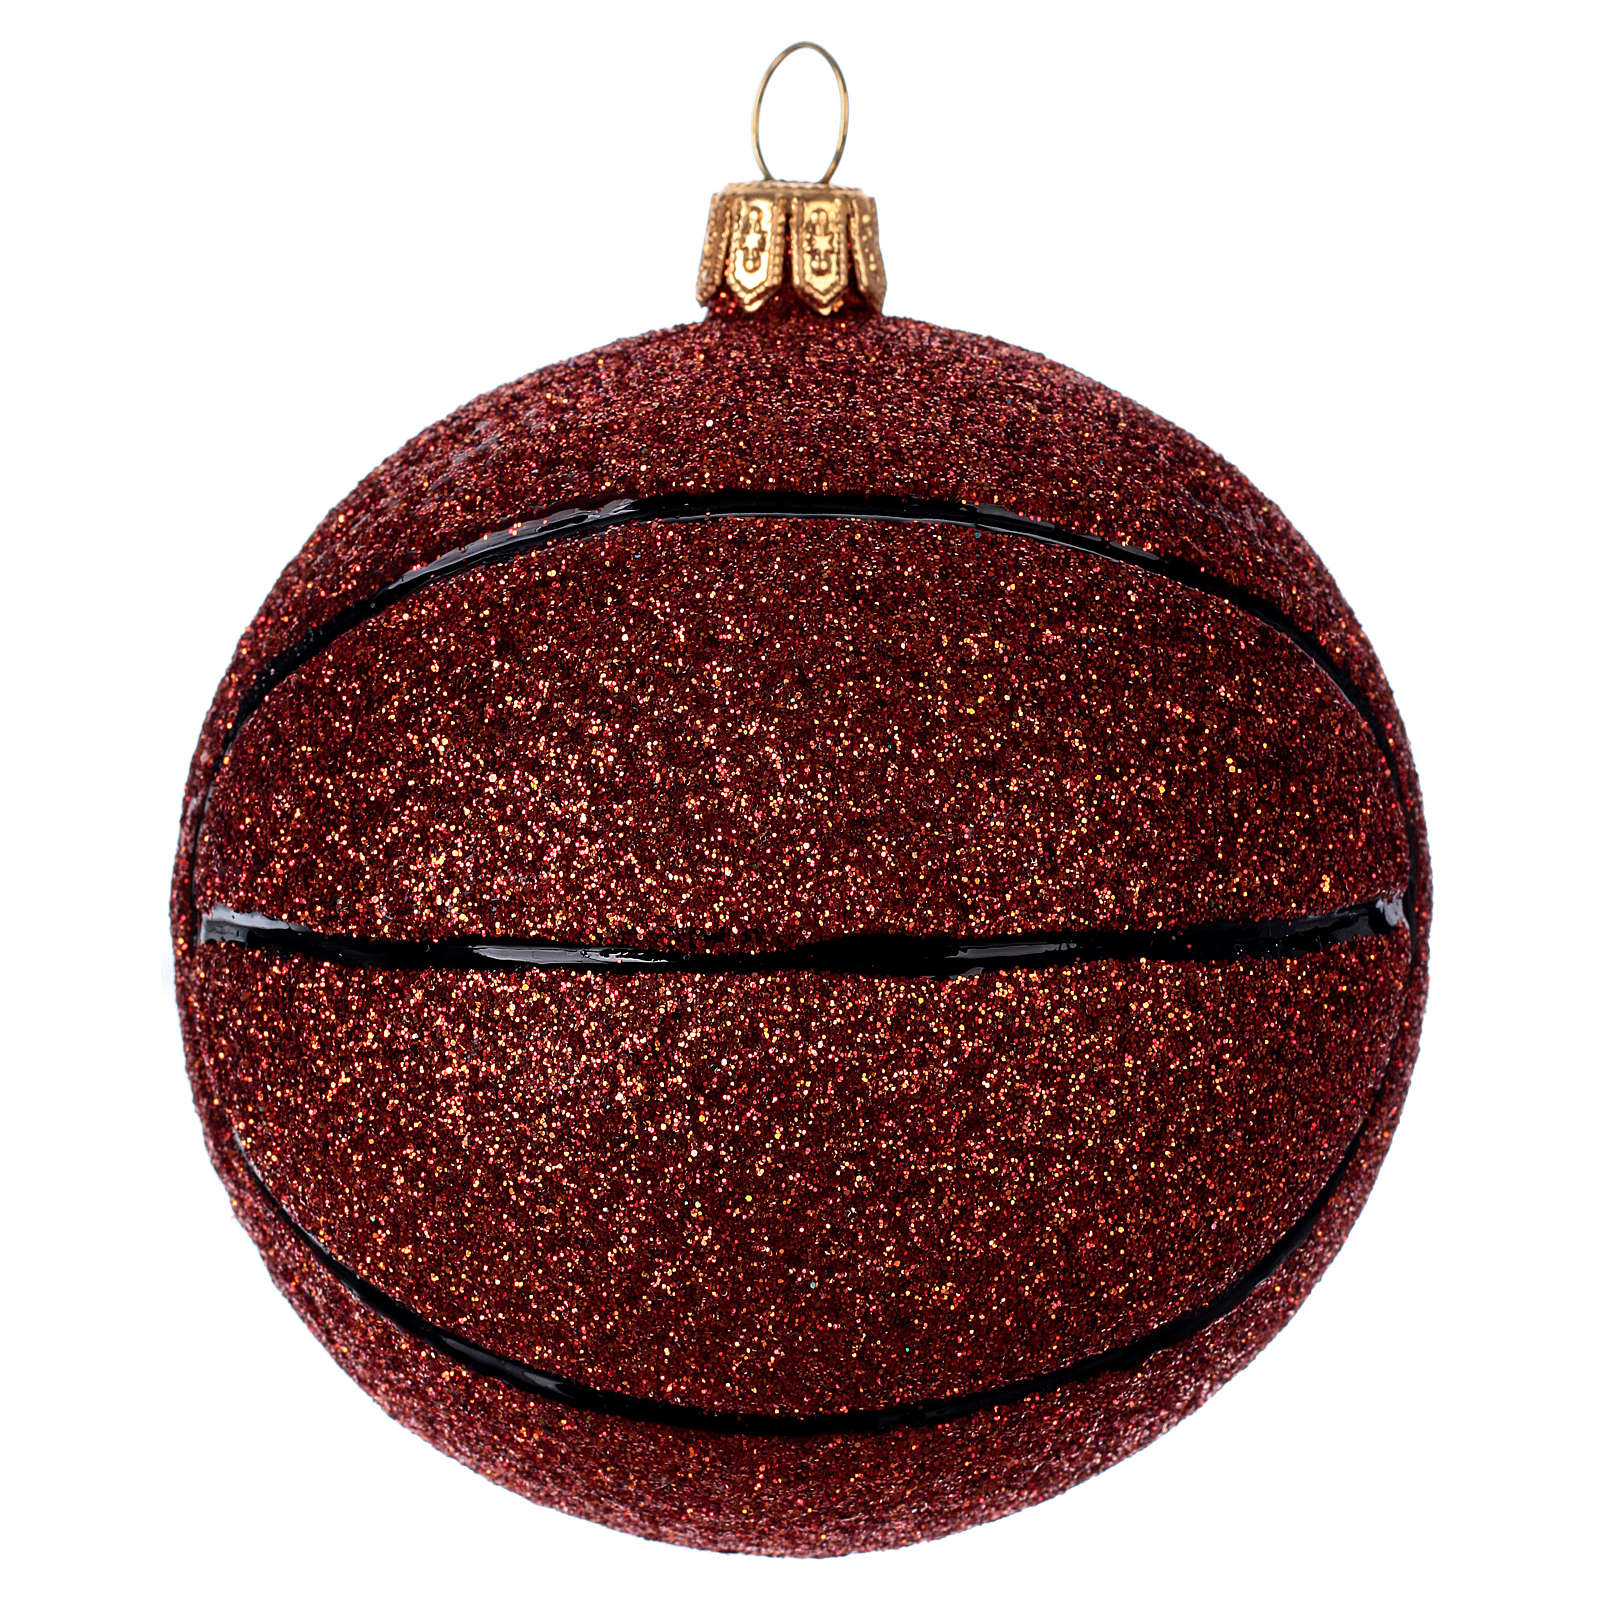 Basket ball in blown glass for Christmas Tree 4